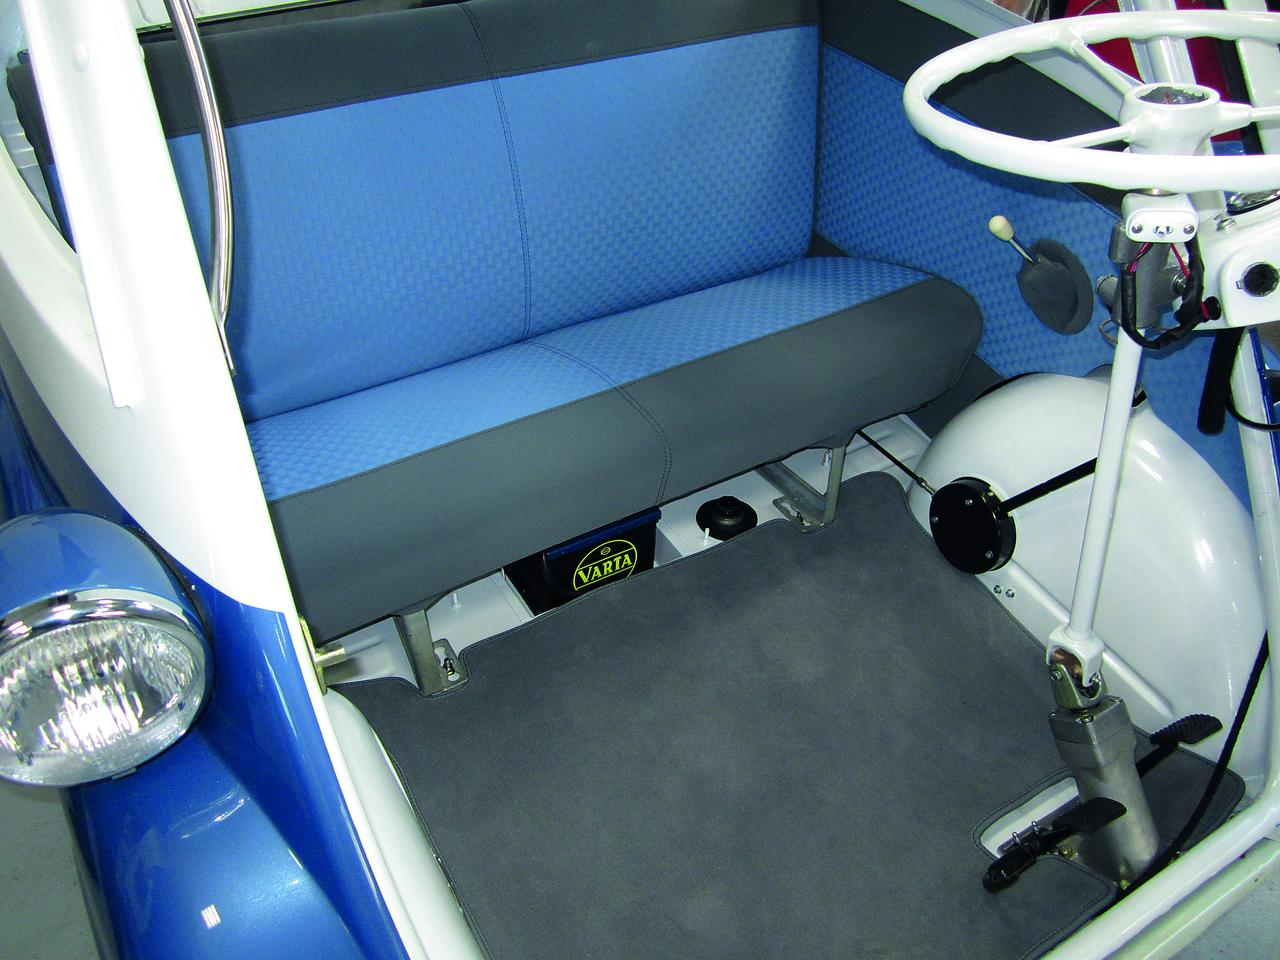 The interior is updated with a soft-touch lining, new seat foam and an A/V system